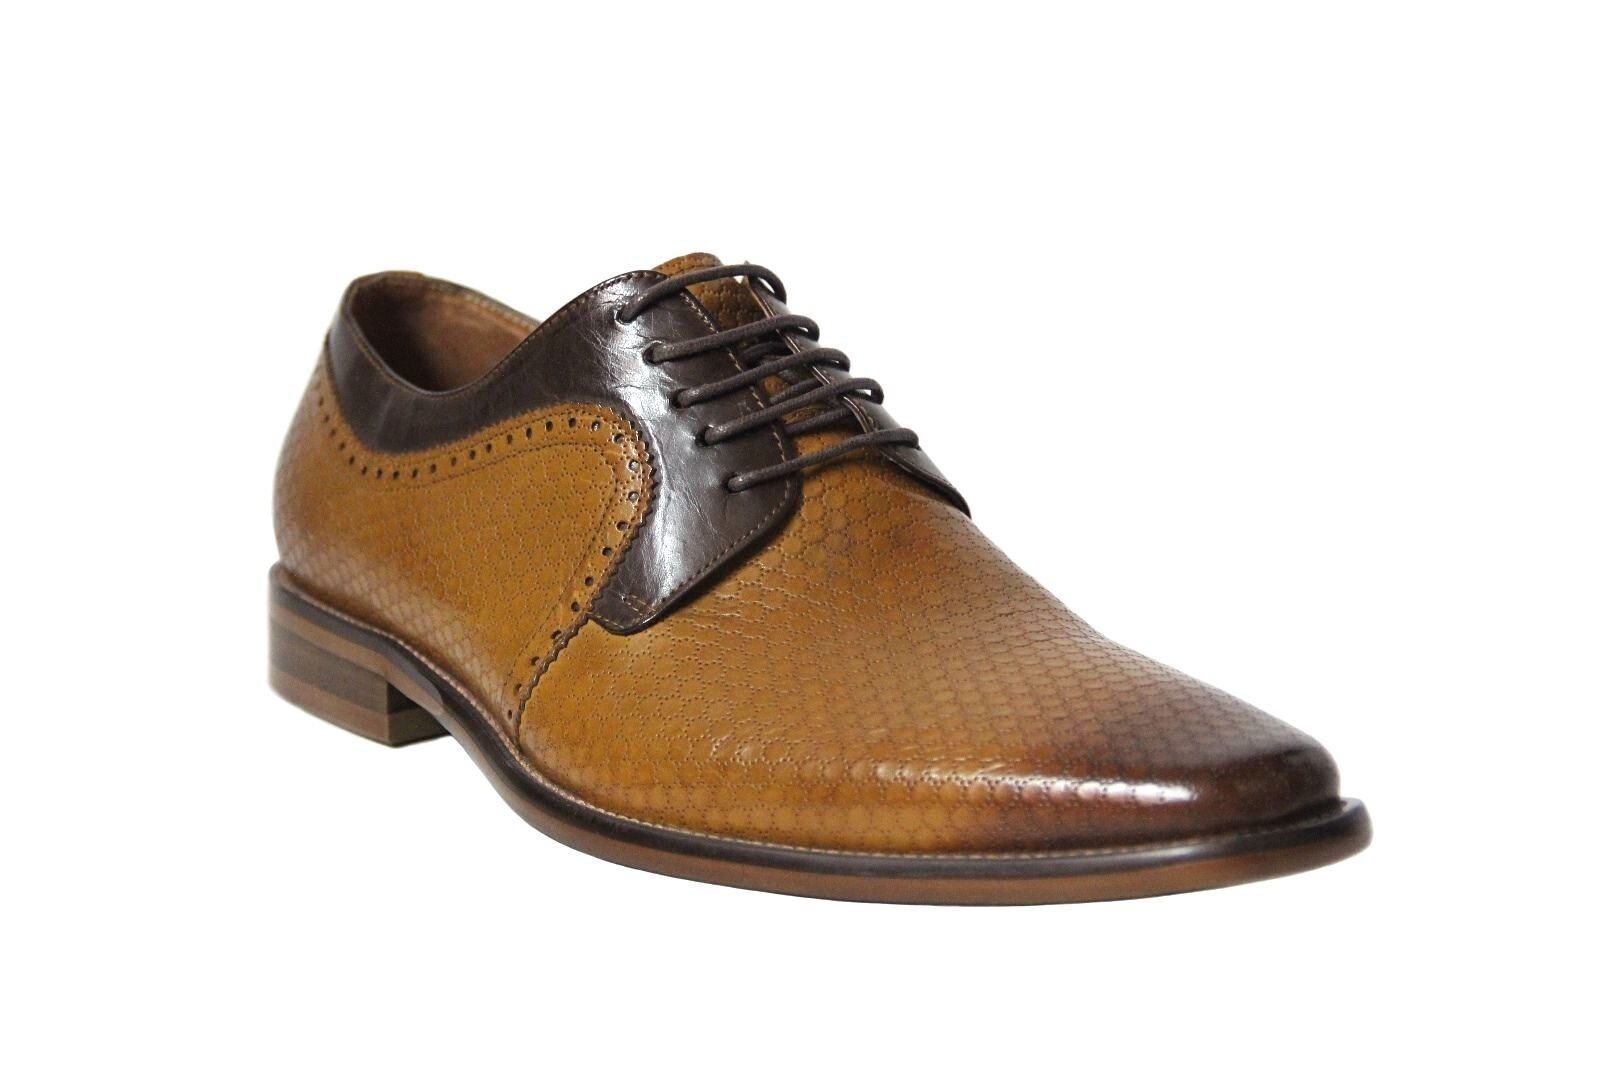 negozio online Steven Land Uomo Scotch Marrone Geometric Designed Leather Oxford Oxford Oxford scarpe  SL0013  sconti e altro